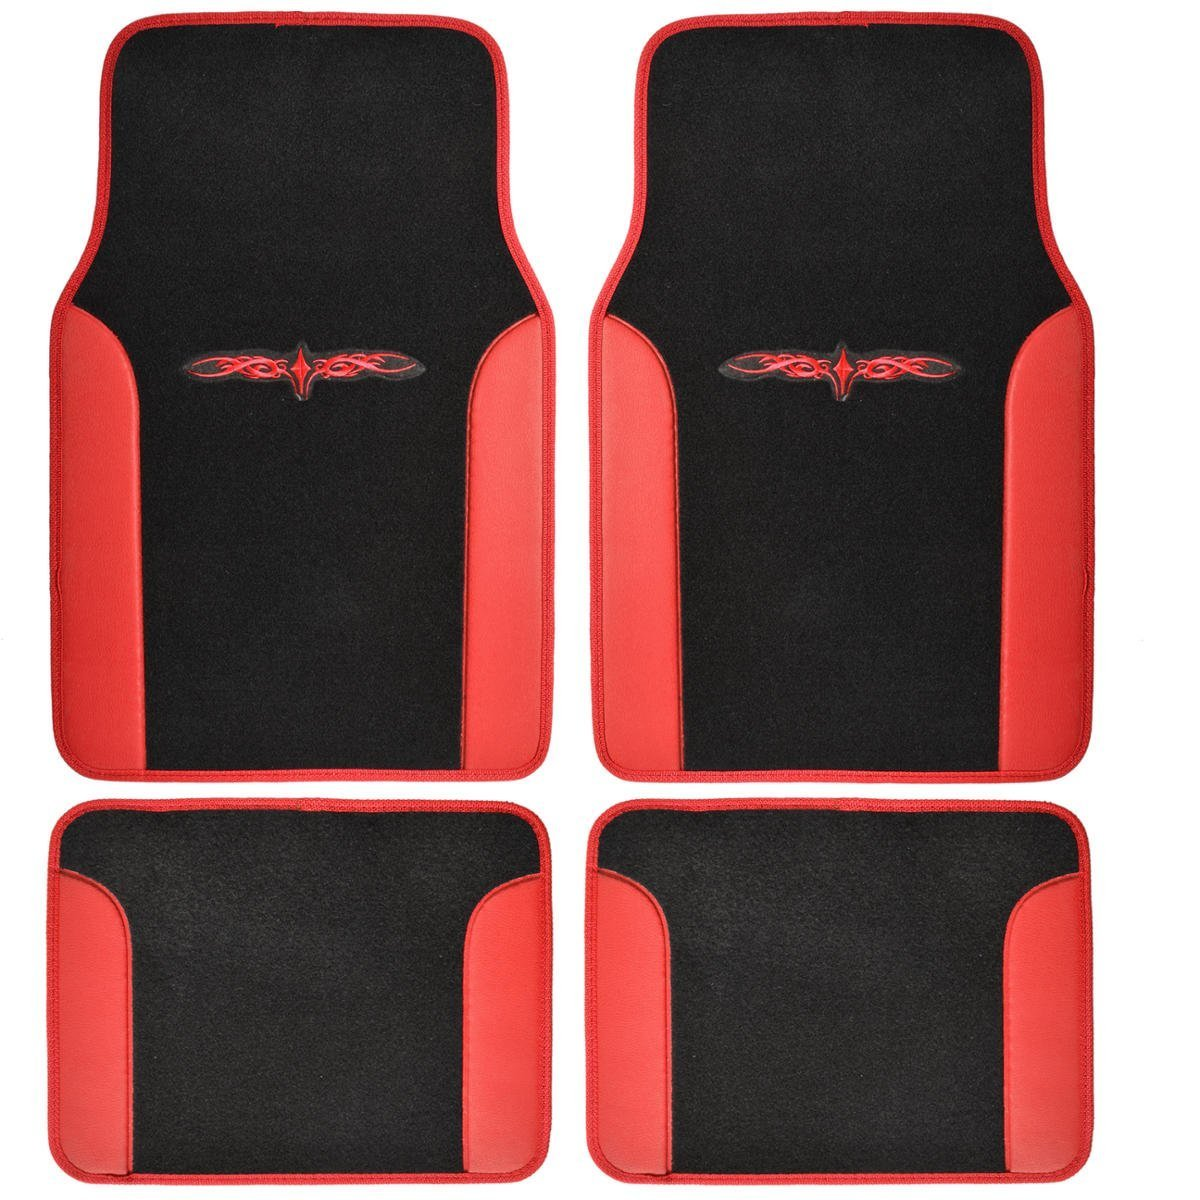 BDK MT-201-RD A Set of 4 Universal Fit Plush Carpet with Vinyl Trim Floor Mats For Cars / Trucks - Tattoo Red by BDK